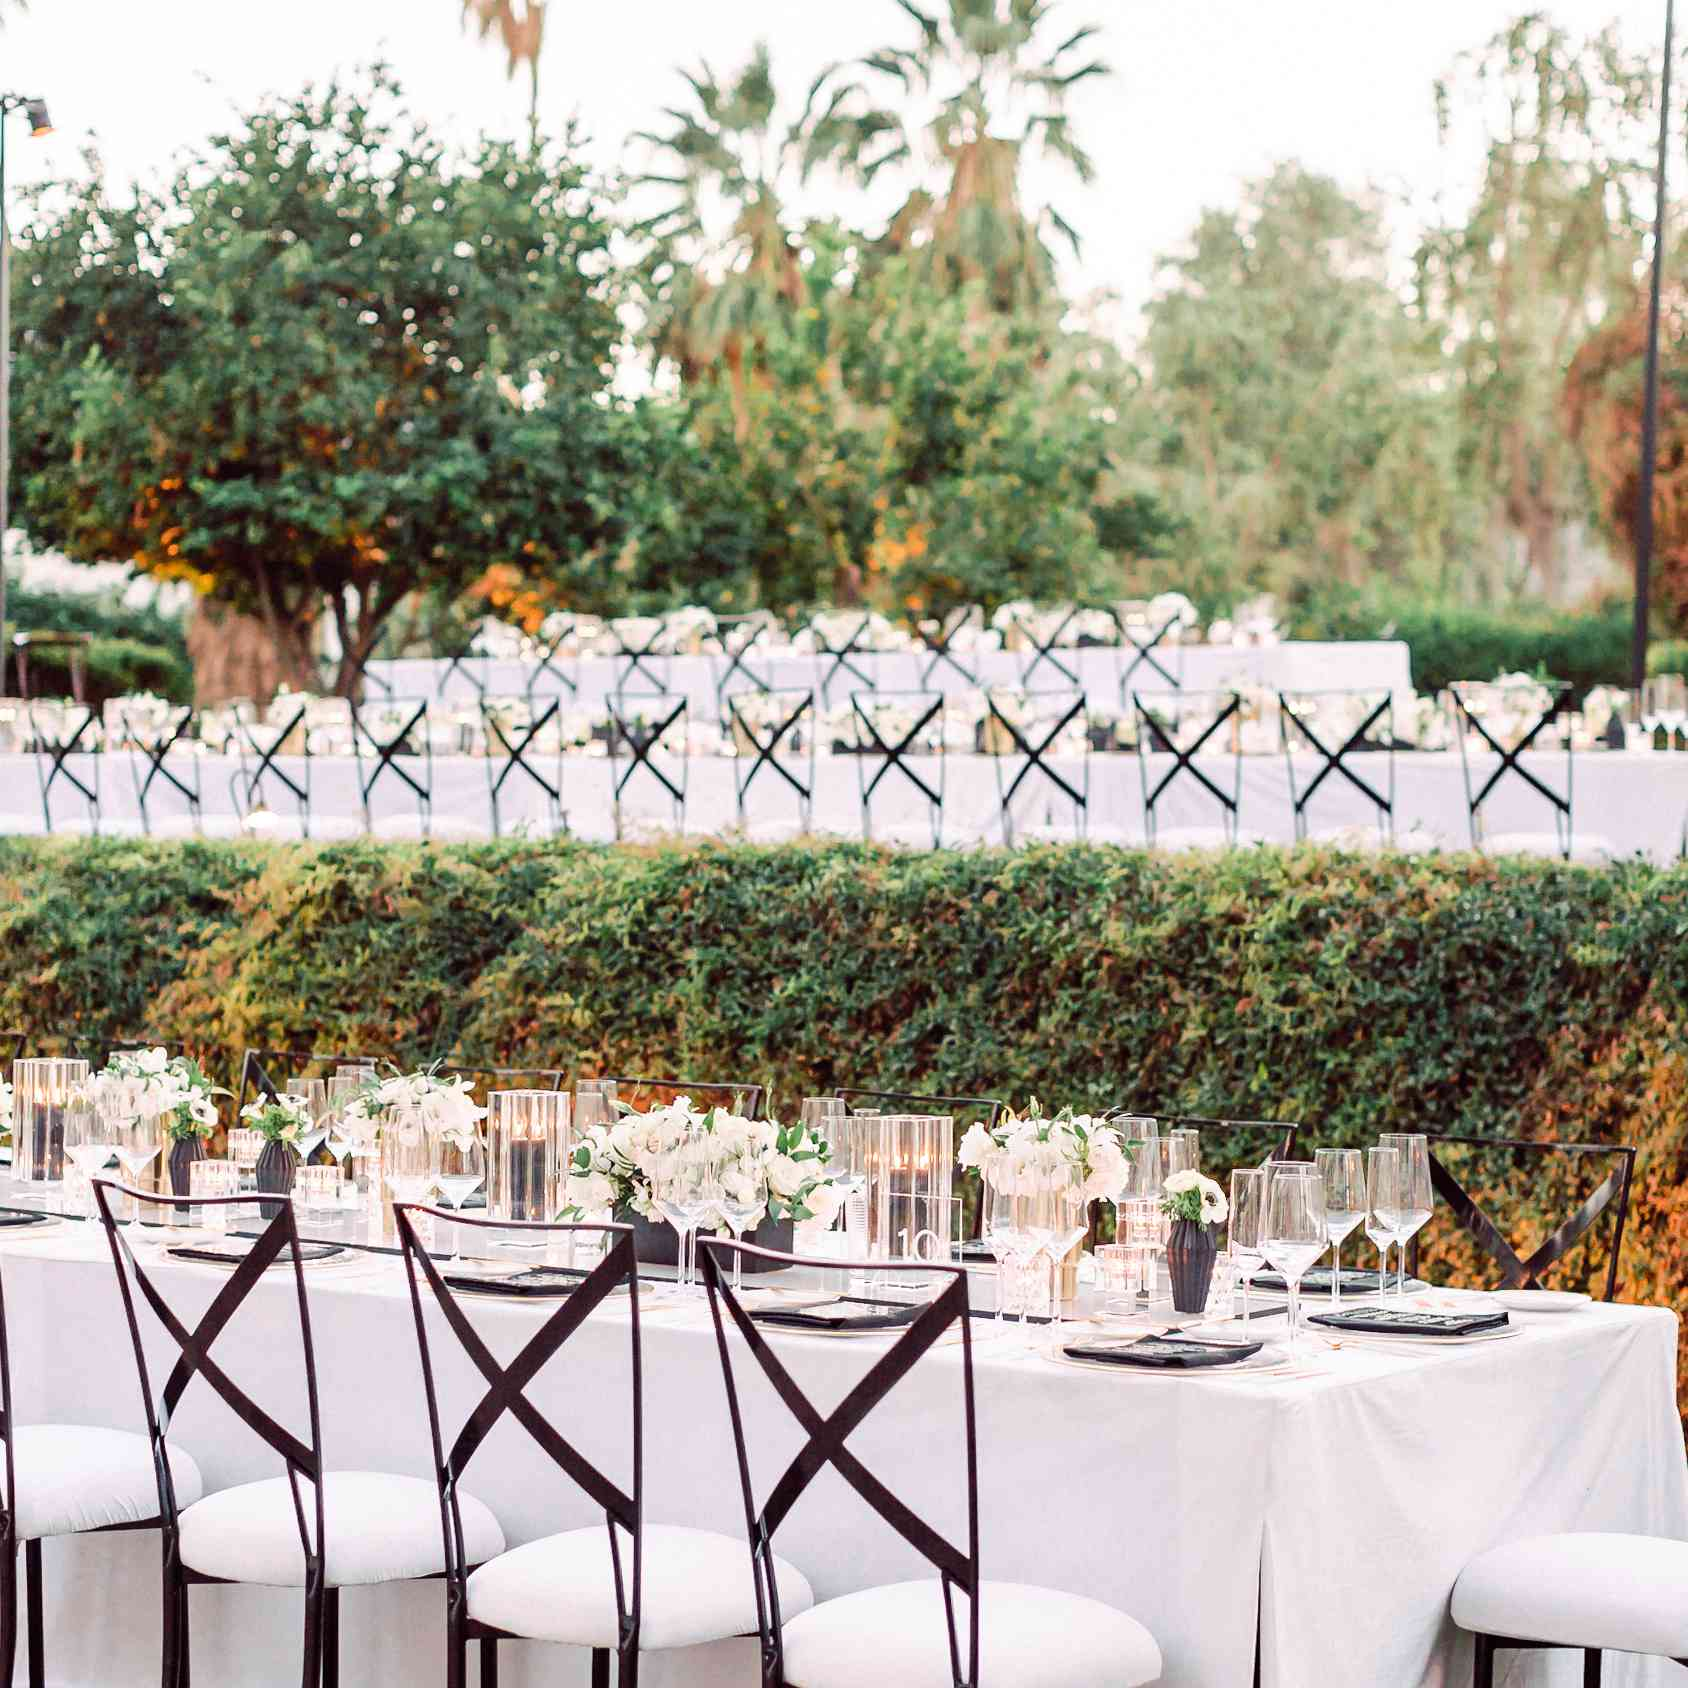 <p>reception seating and tables</p><br><br>